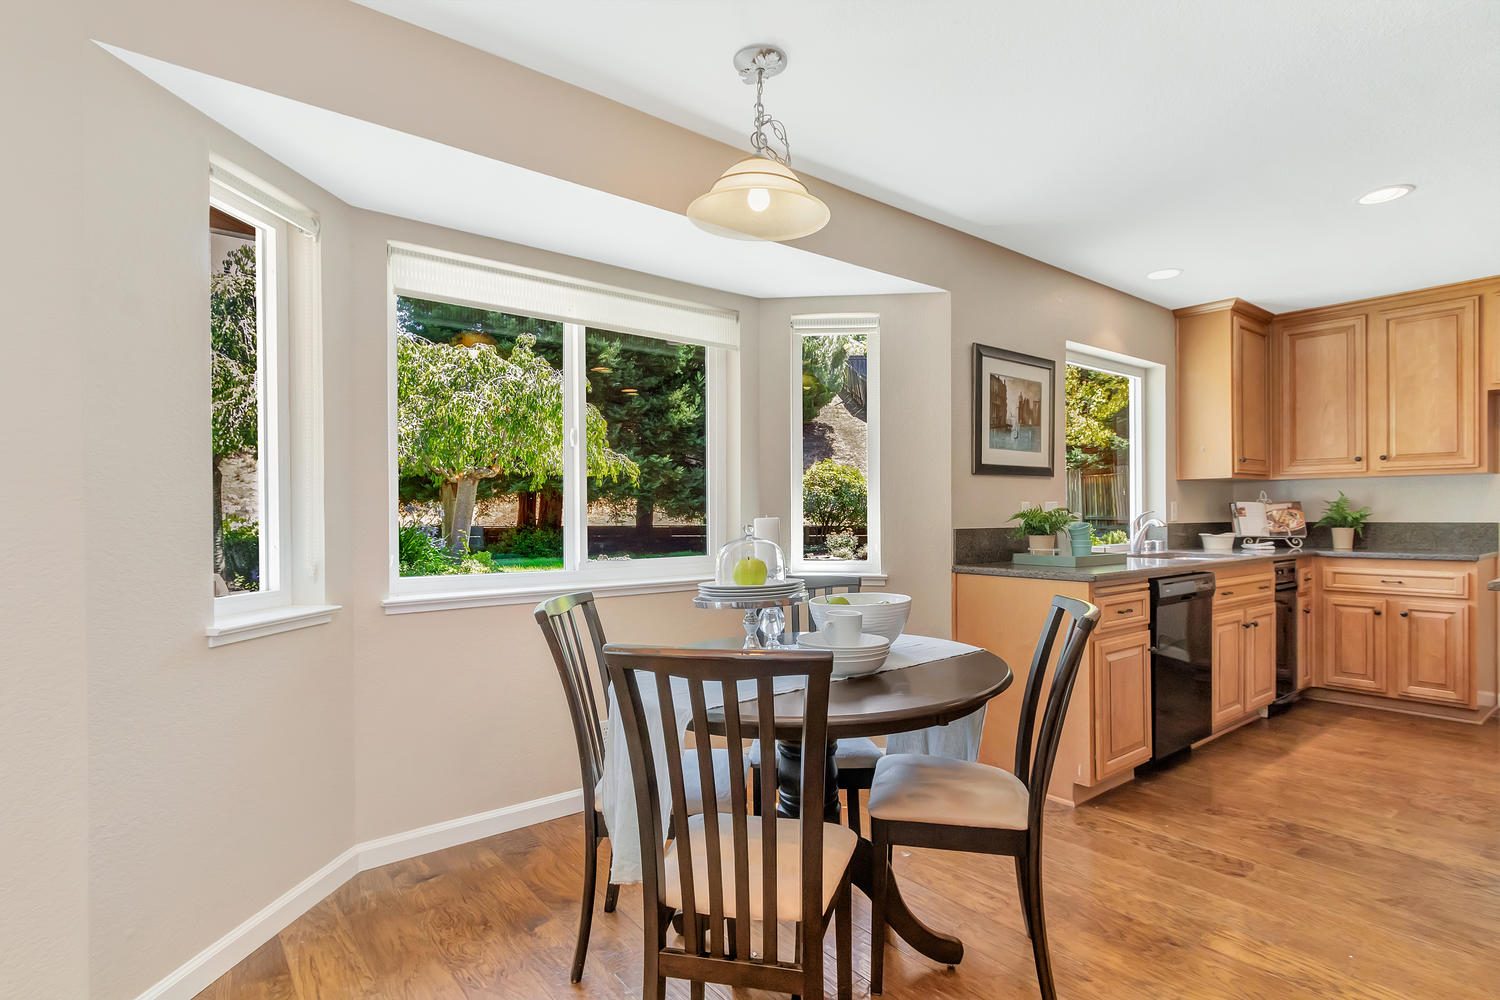 Dining nook off of kitchen offers a relaxing view.